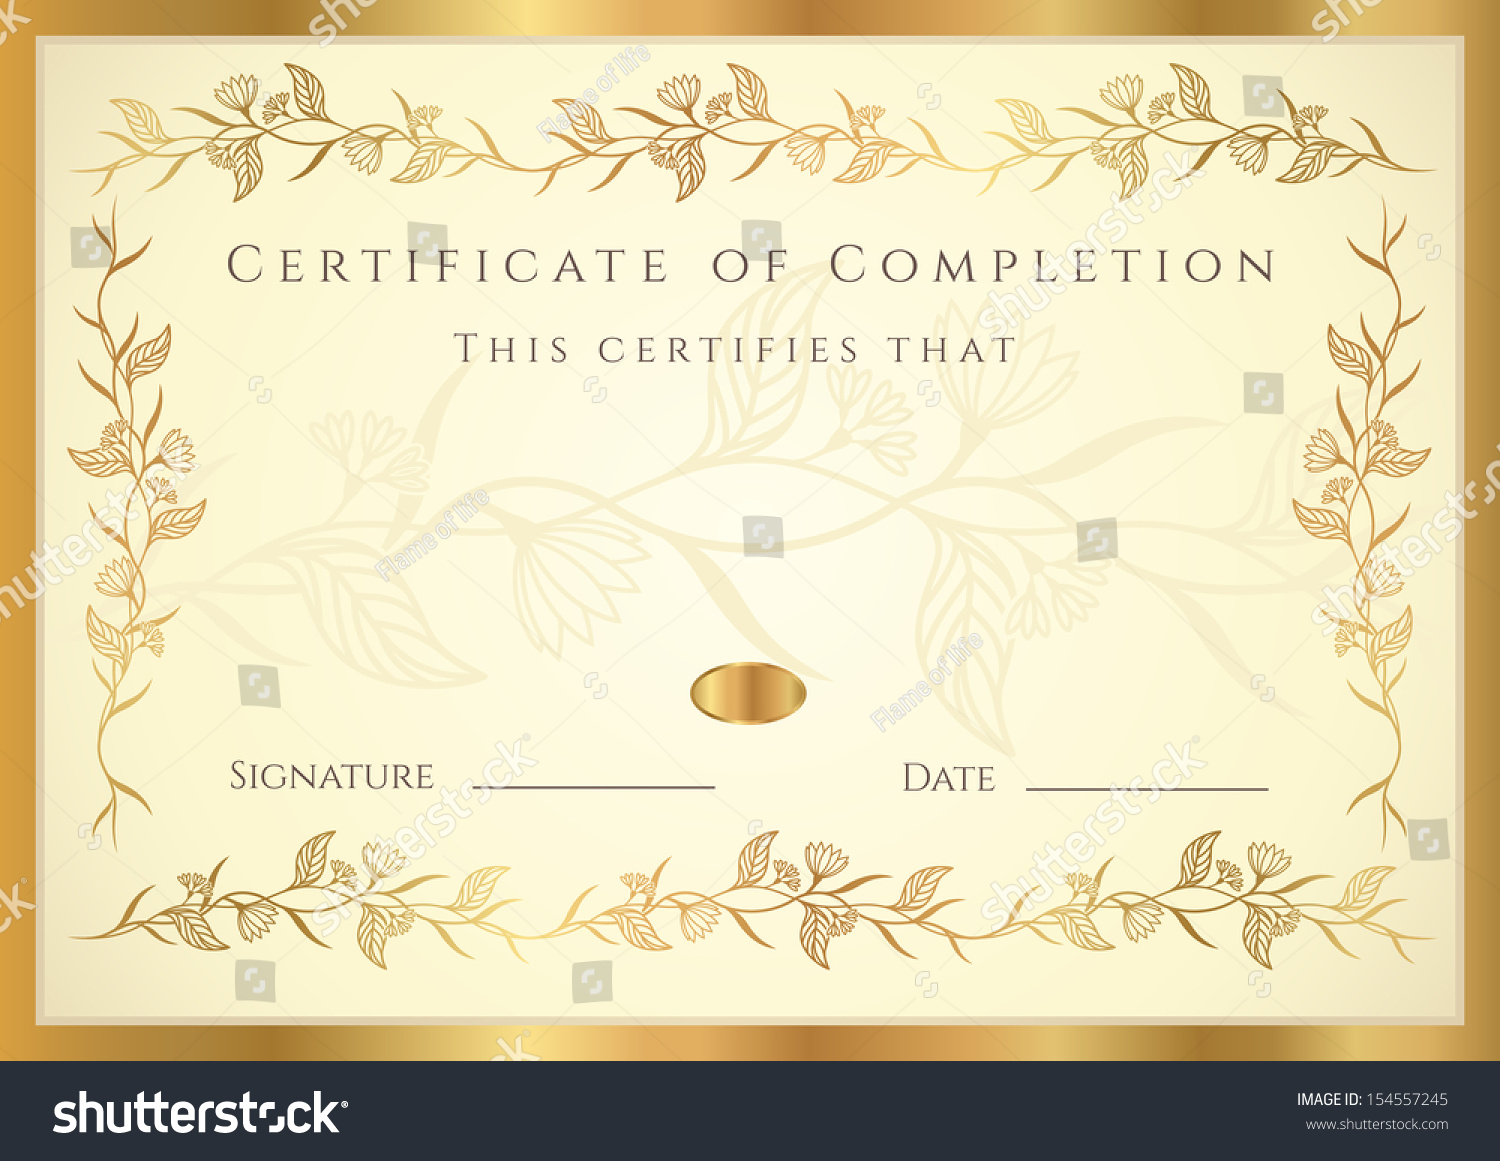 winner certificate template – Achievement Certificate Templates Free